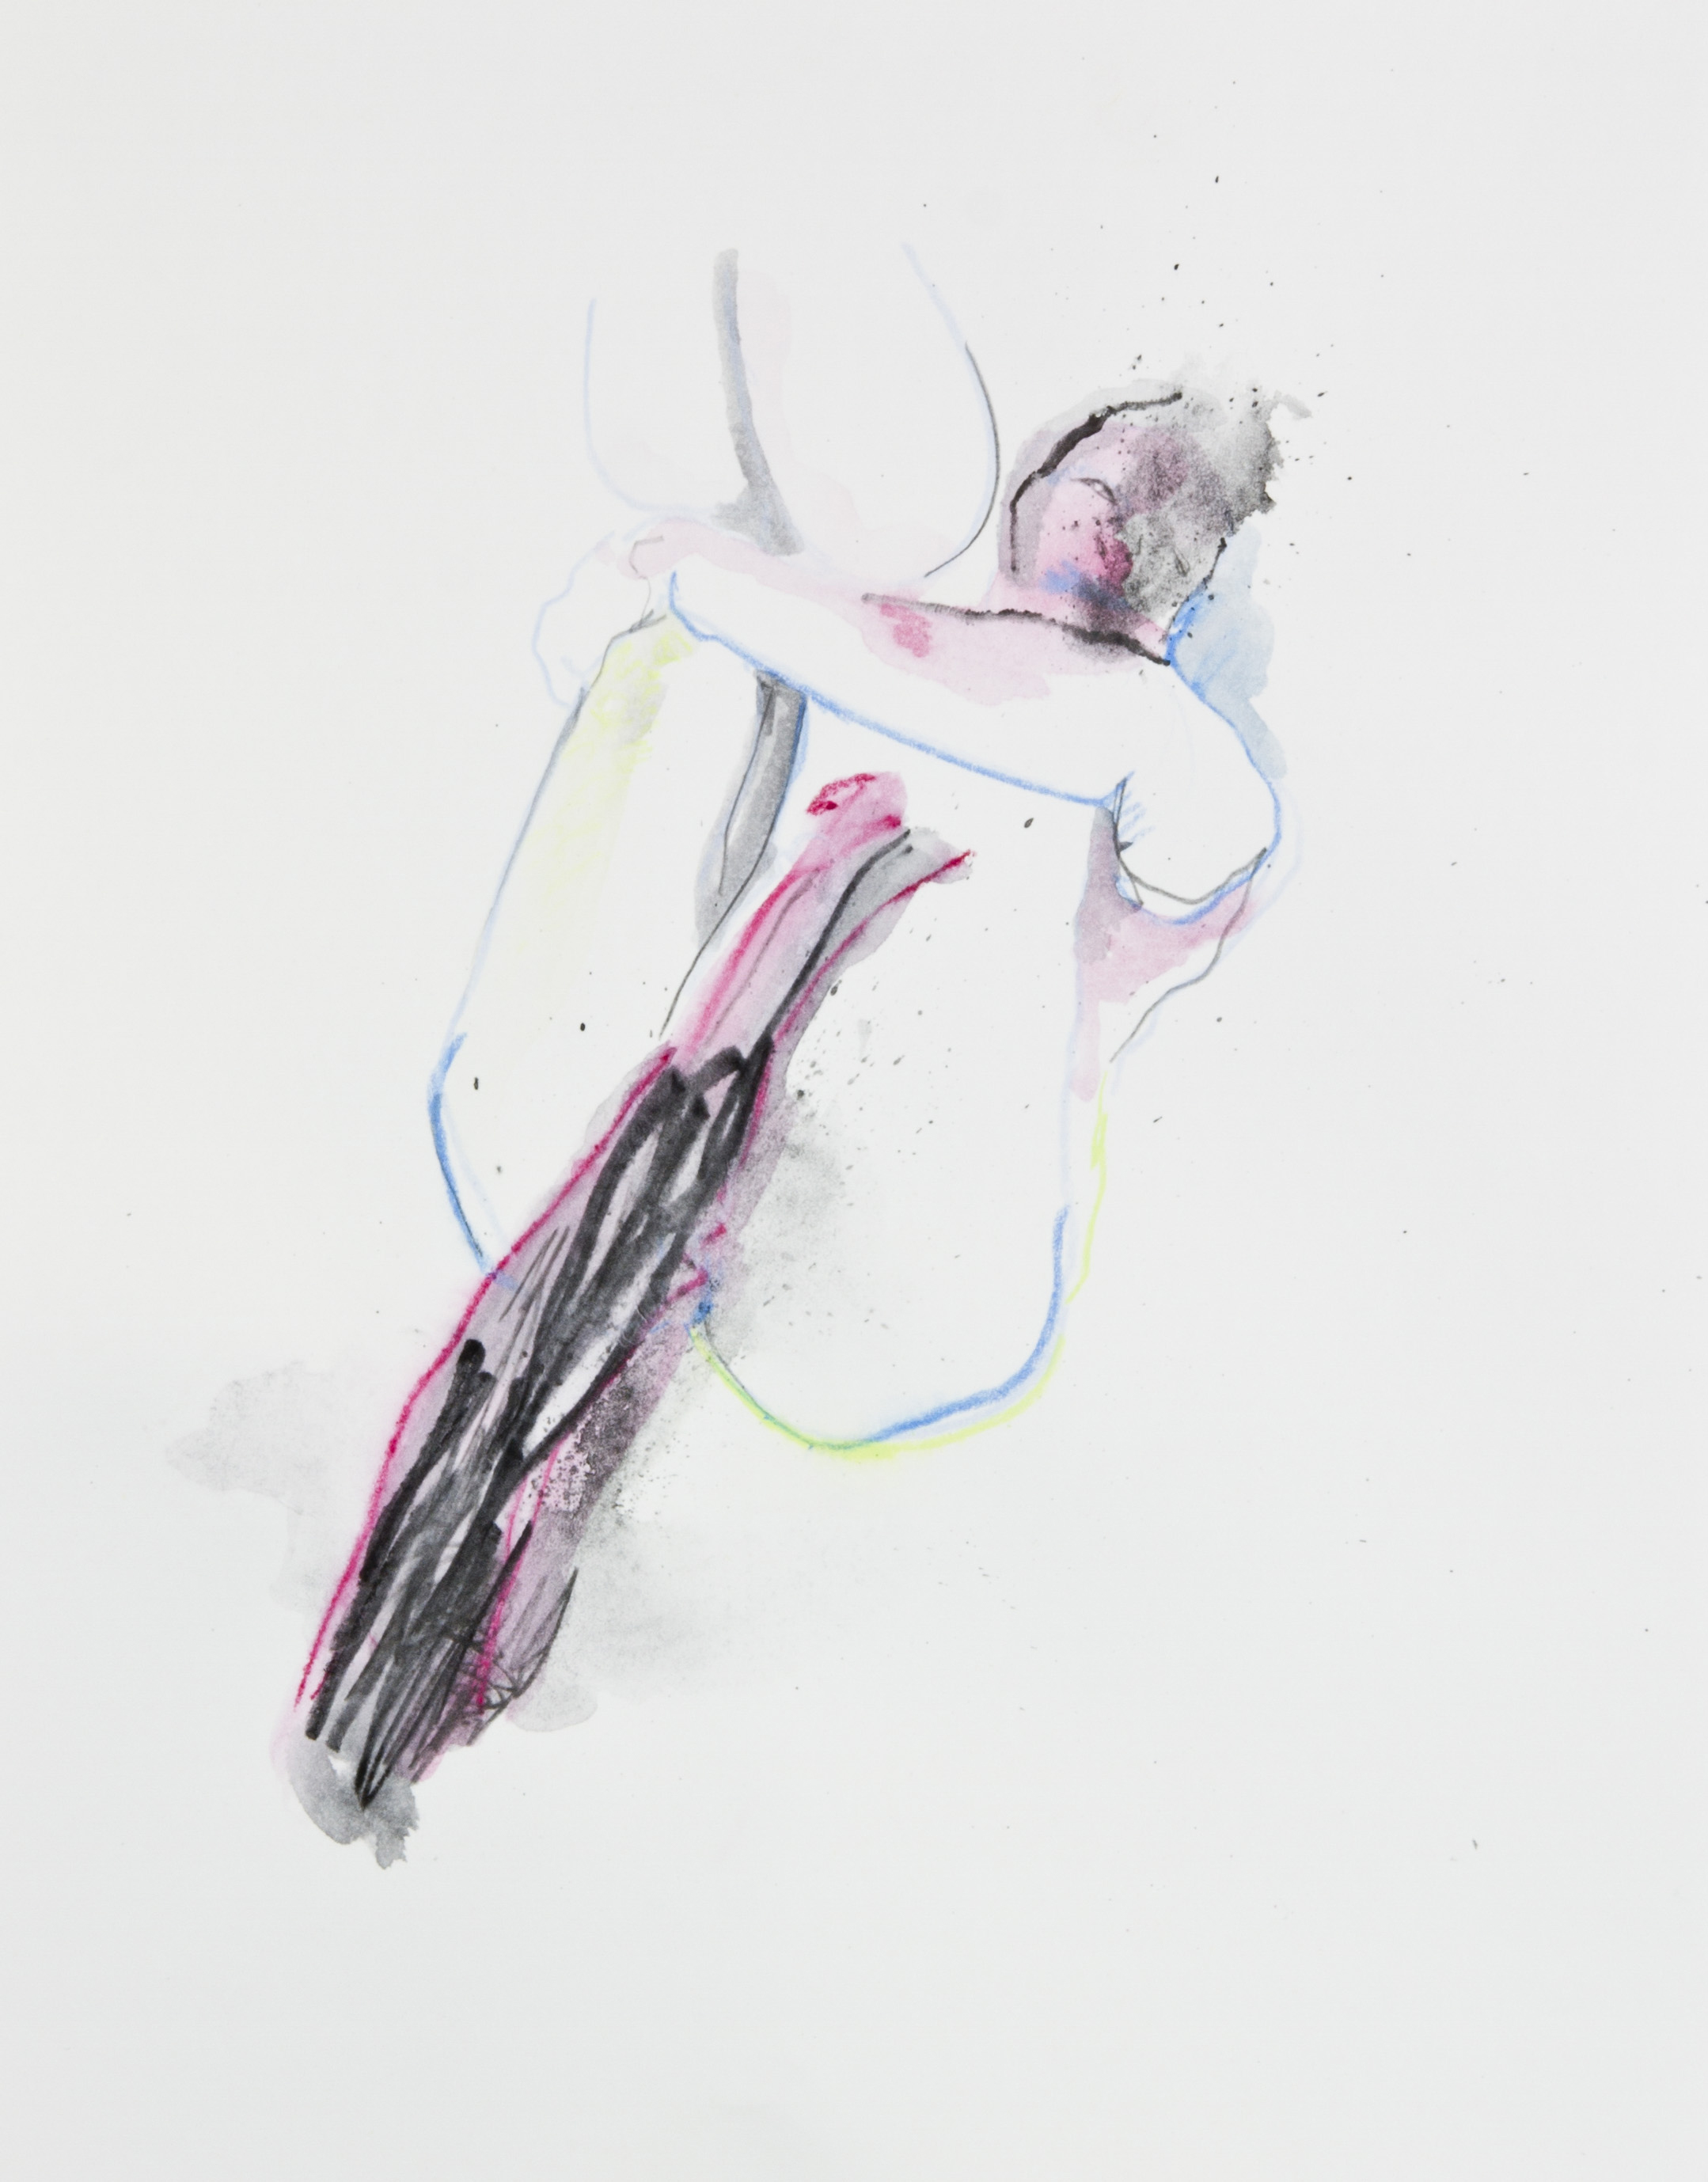 Void Drawers, 2013, graphite, crayon and watercolor pencil on paper, 11x14 inches